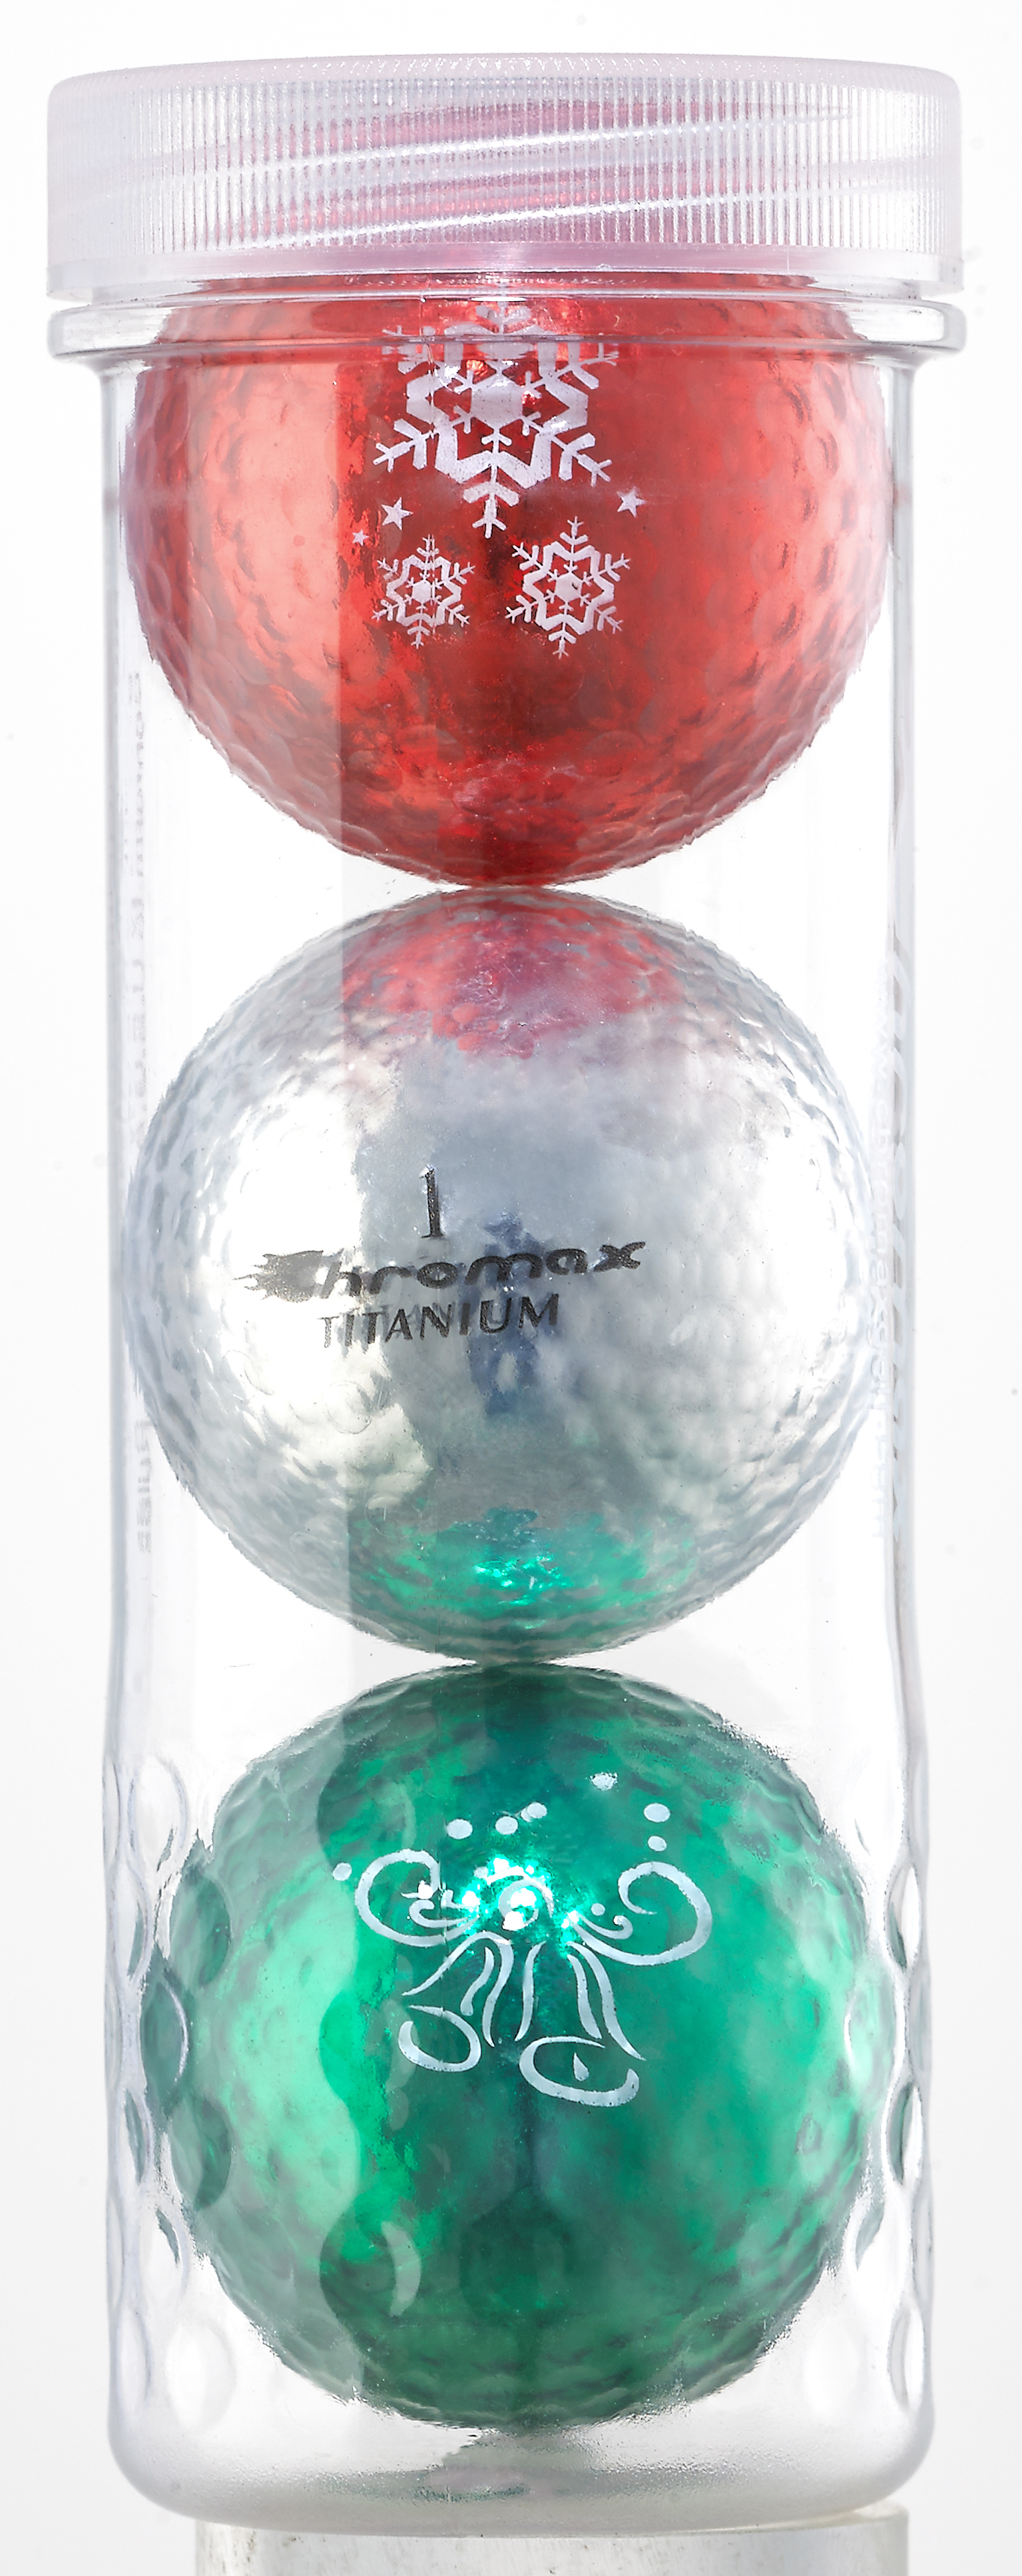 Holiday Golf Balls - Chromax M1x 3 Ball Tube - (Red, Silver, Green) CHOL3RSG